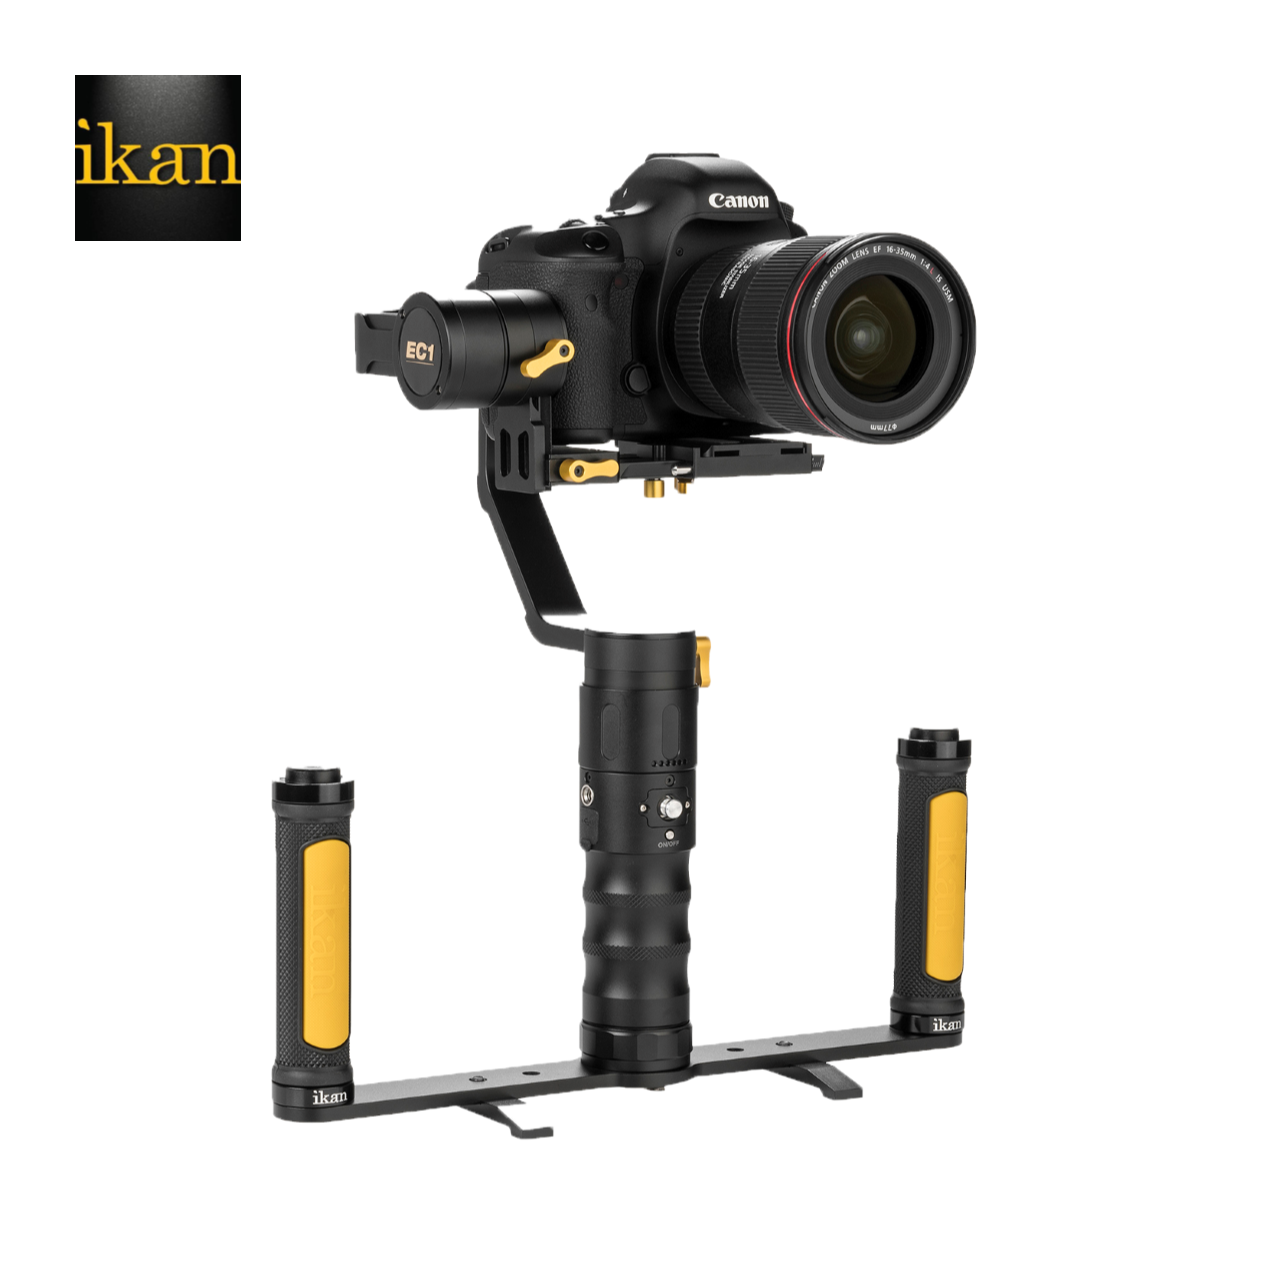 Ikan EC1 BEHOLDER 3-AXIS GIMBAL KIT W/ DUAL GRIP HANDLES FOR DSLRS & MIRRORLESS CAMERAS Camera Gimbal Stabilizers Camera Support